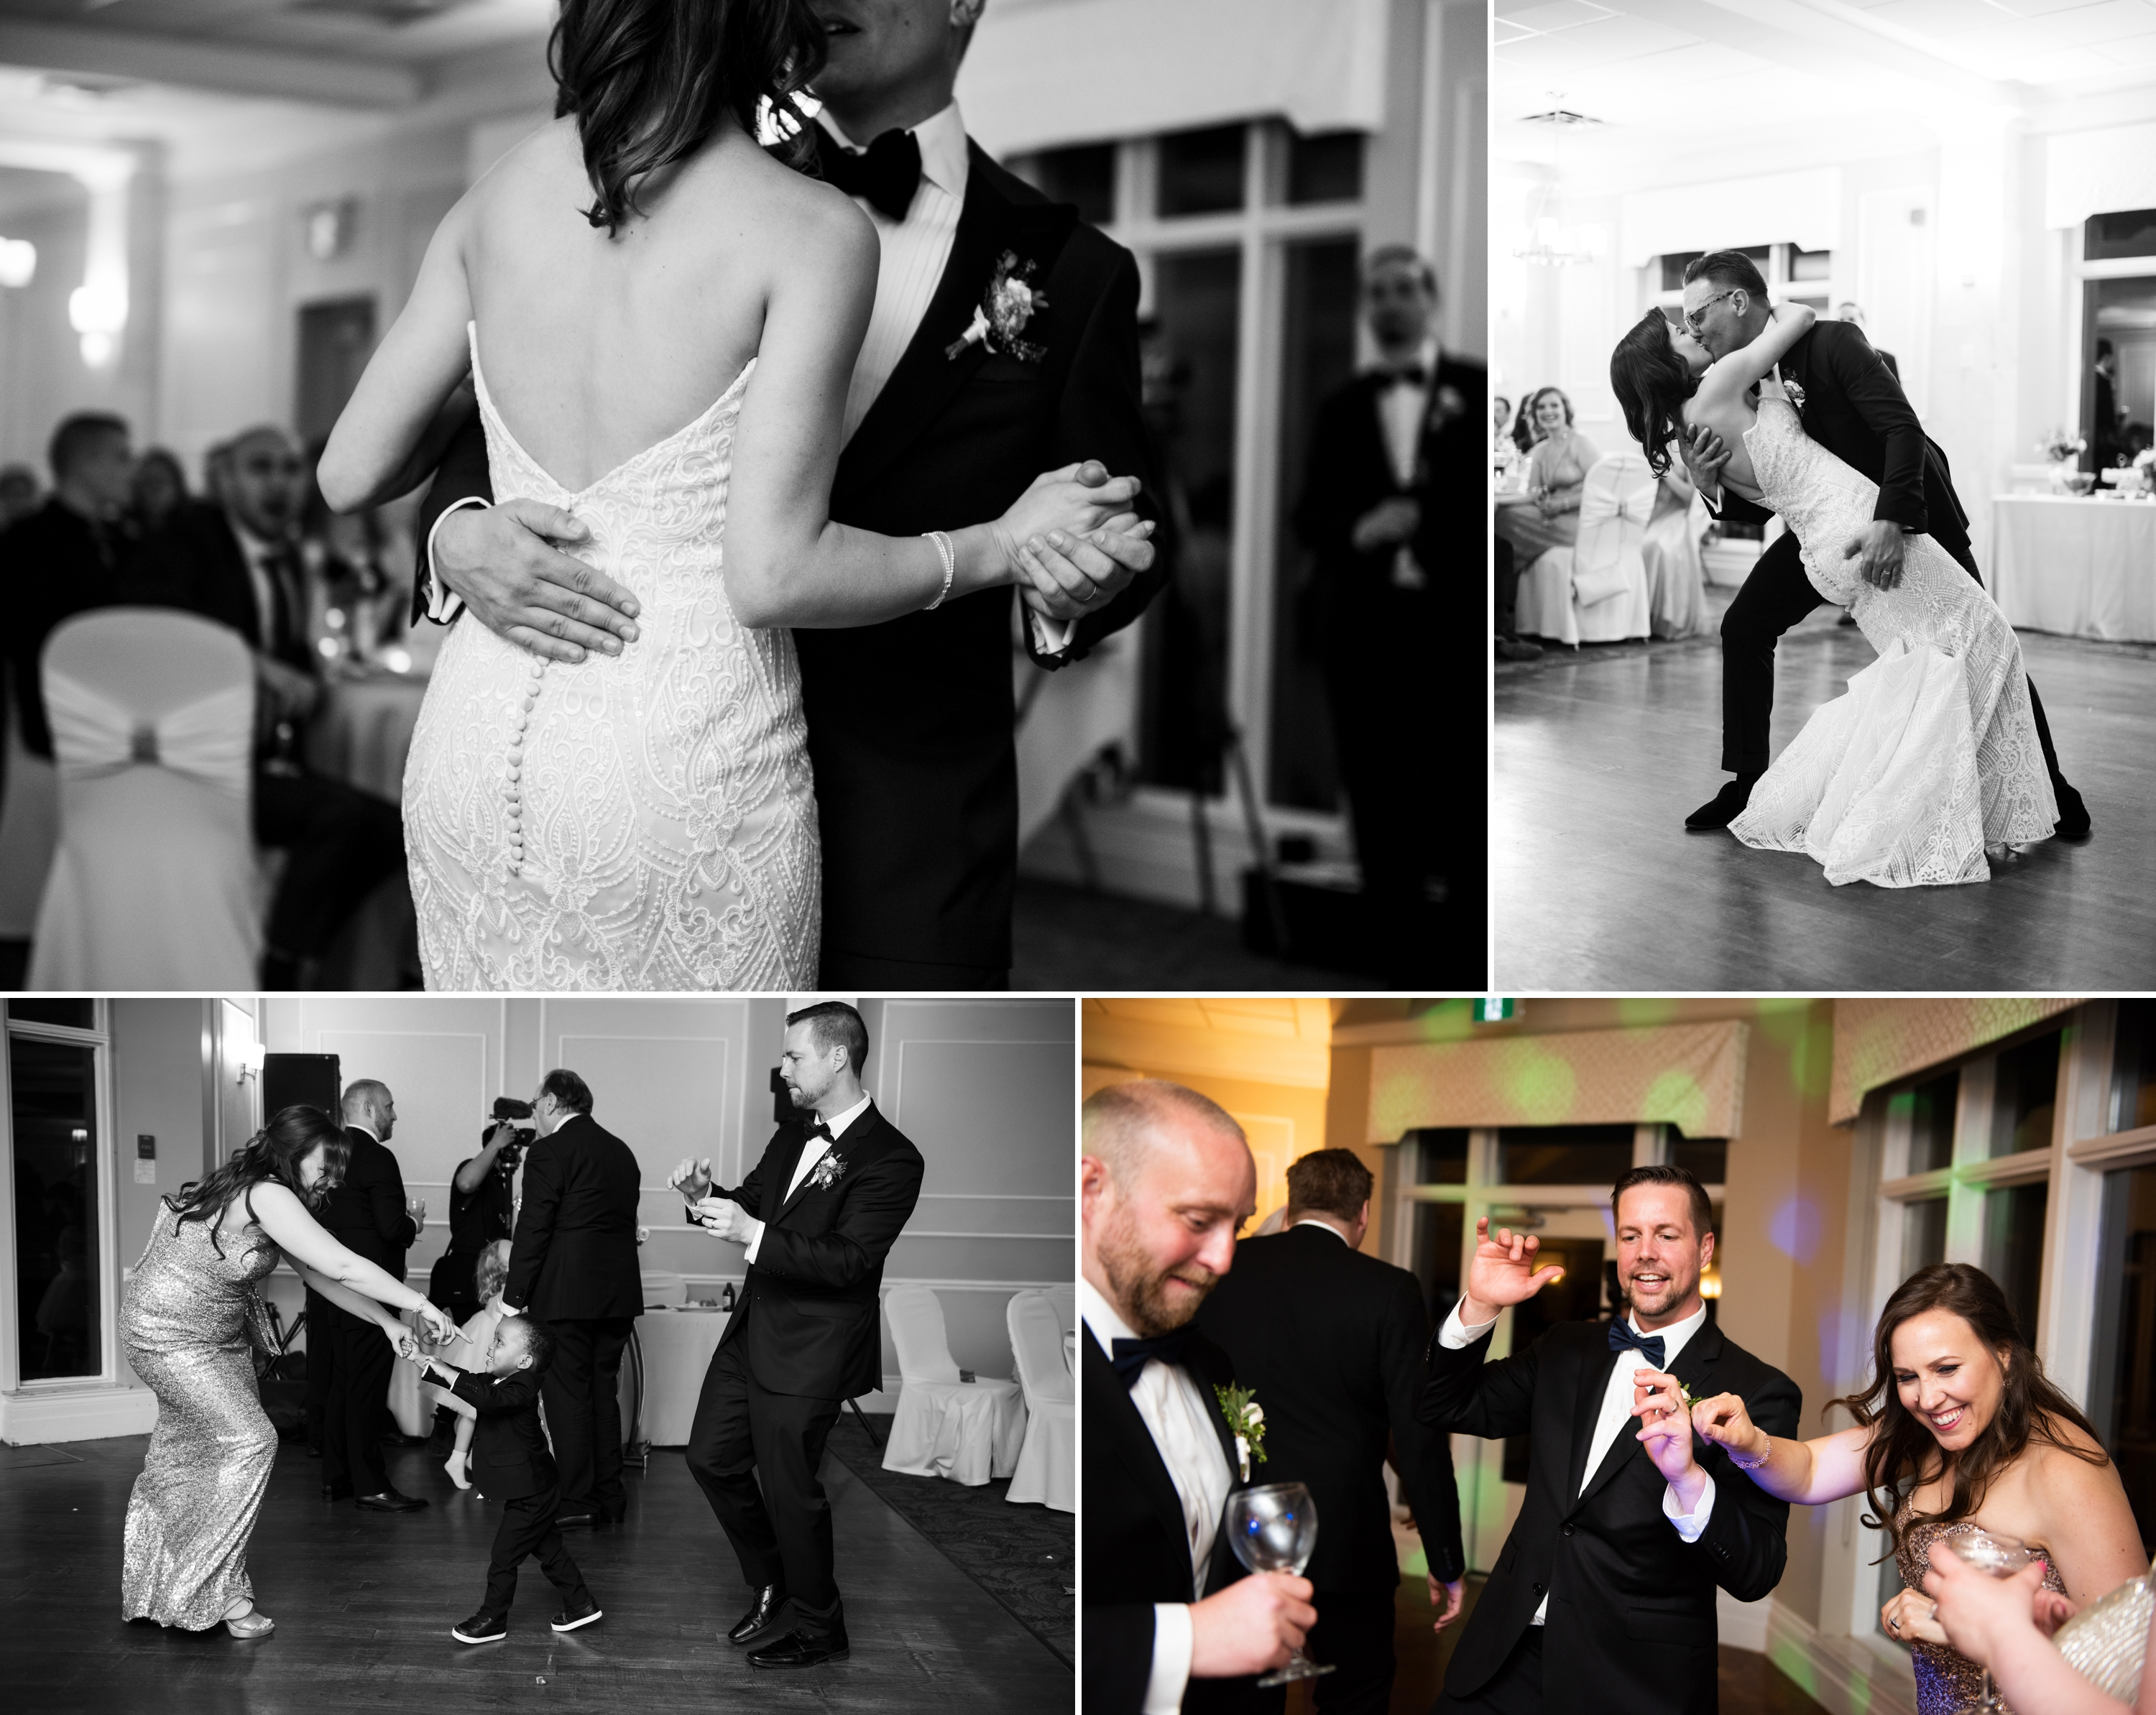 Dance Party Dip Josh Zsuzsi Pal Photography Wedding Elmhurst Inn Studio Lumen